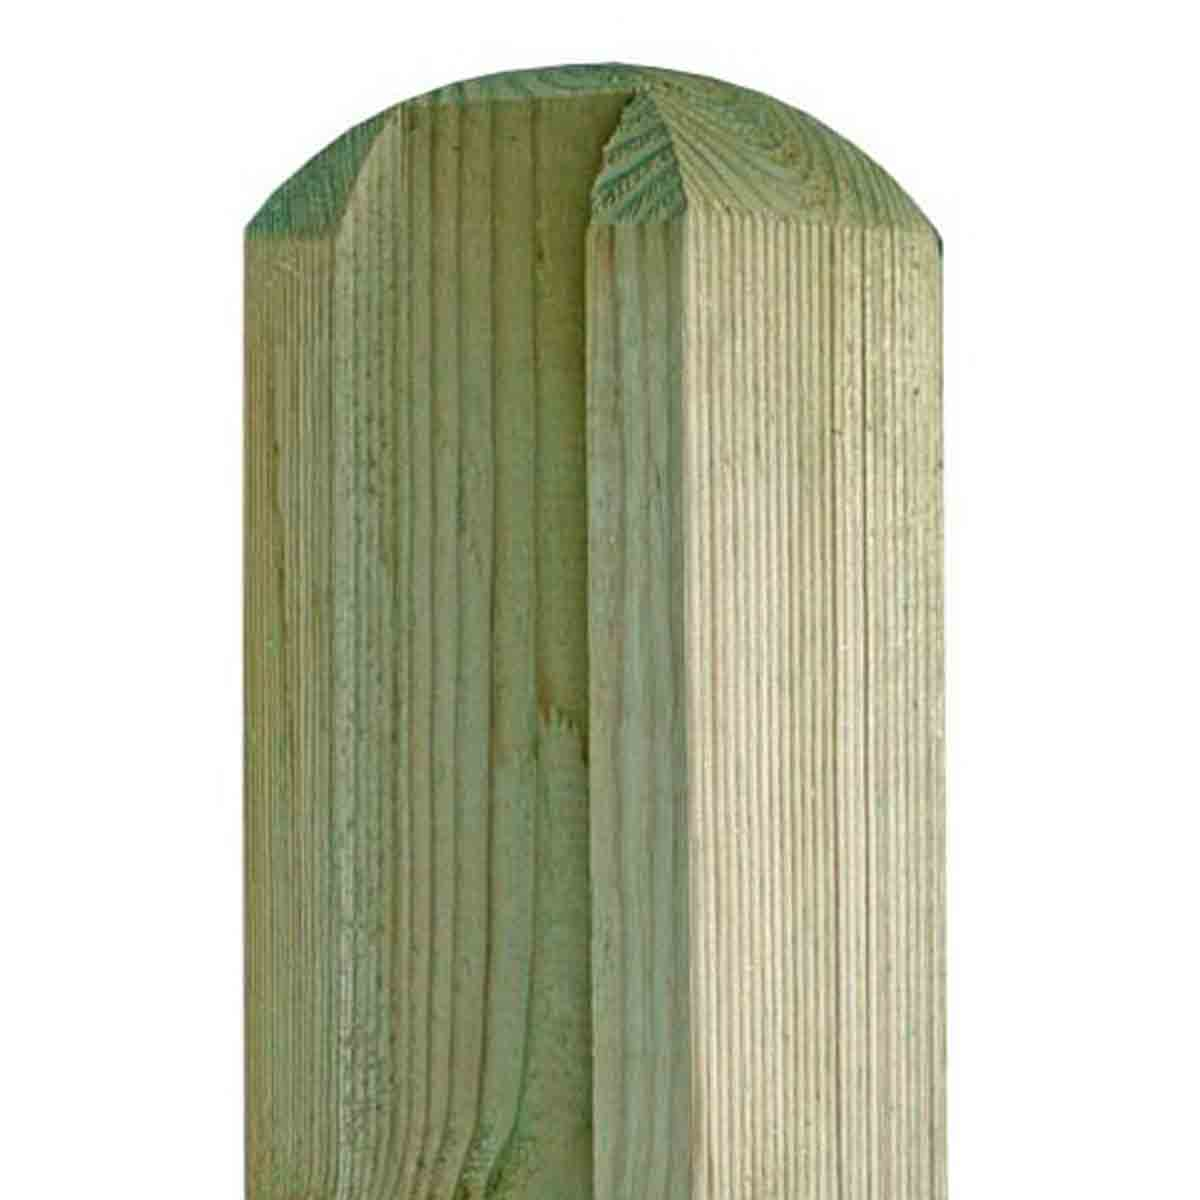 Fencing Supplies Suffolk Wooden Slotted Pin Grooved Post